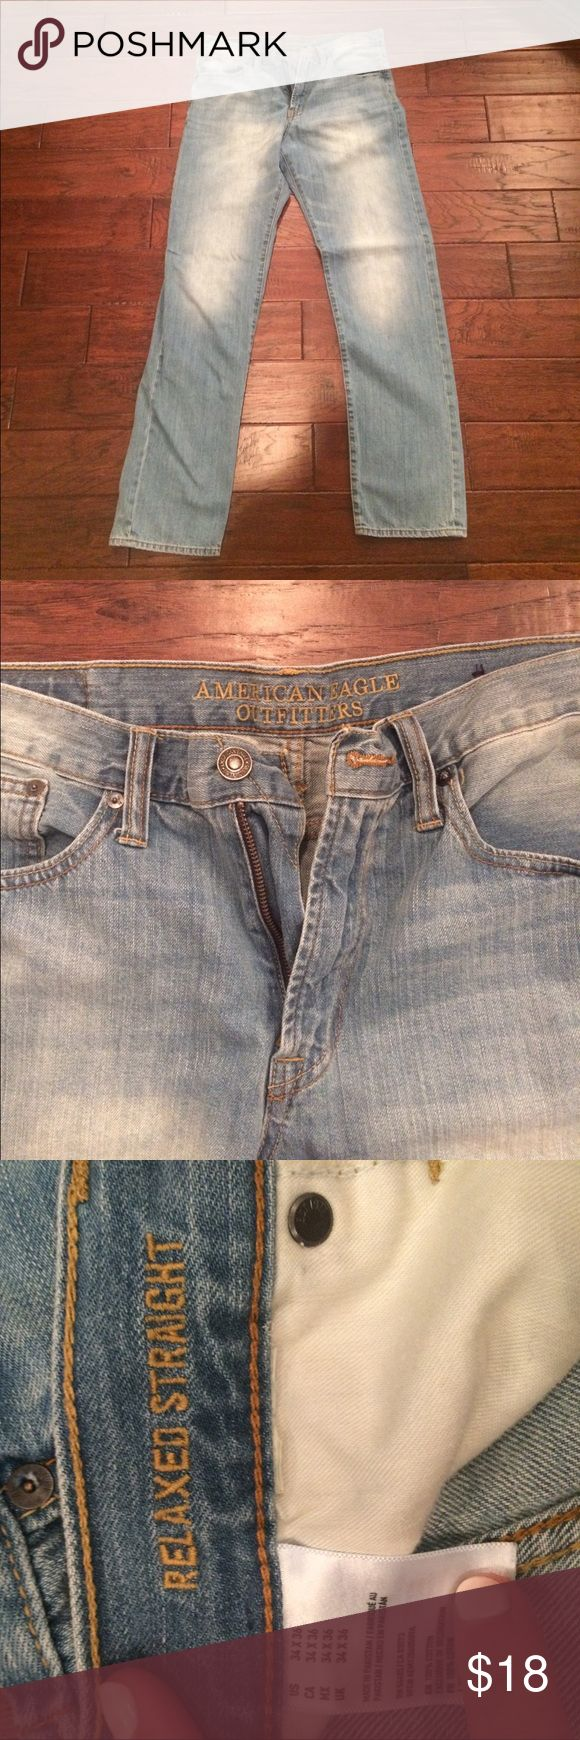 Men's Jeans, Relaxed Straight American Eagle Men's American Eagle jeans, light wash, relaxed straight, size 34x36 American Eagle Outfitters Jeans Straight